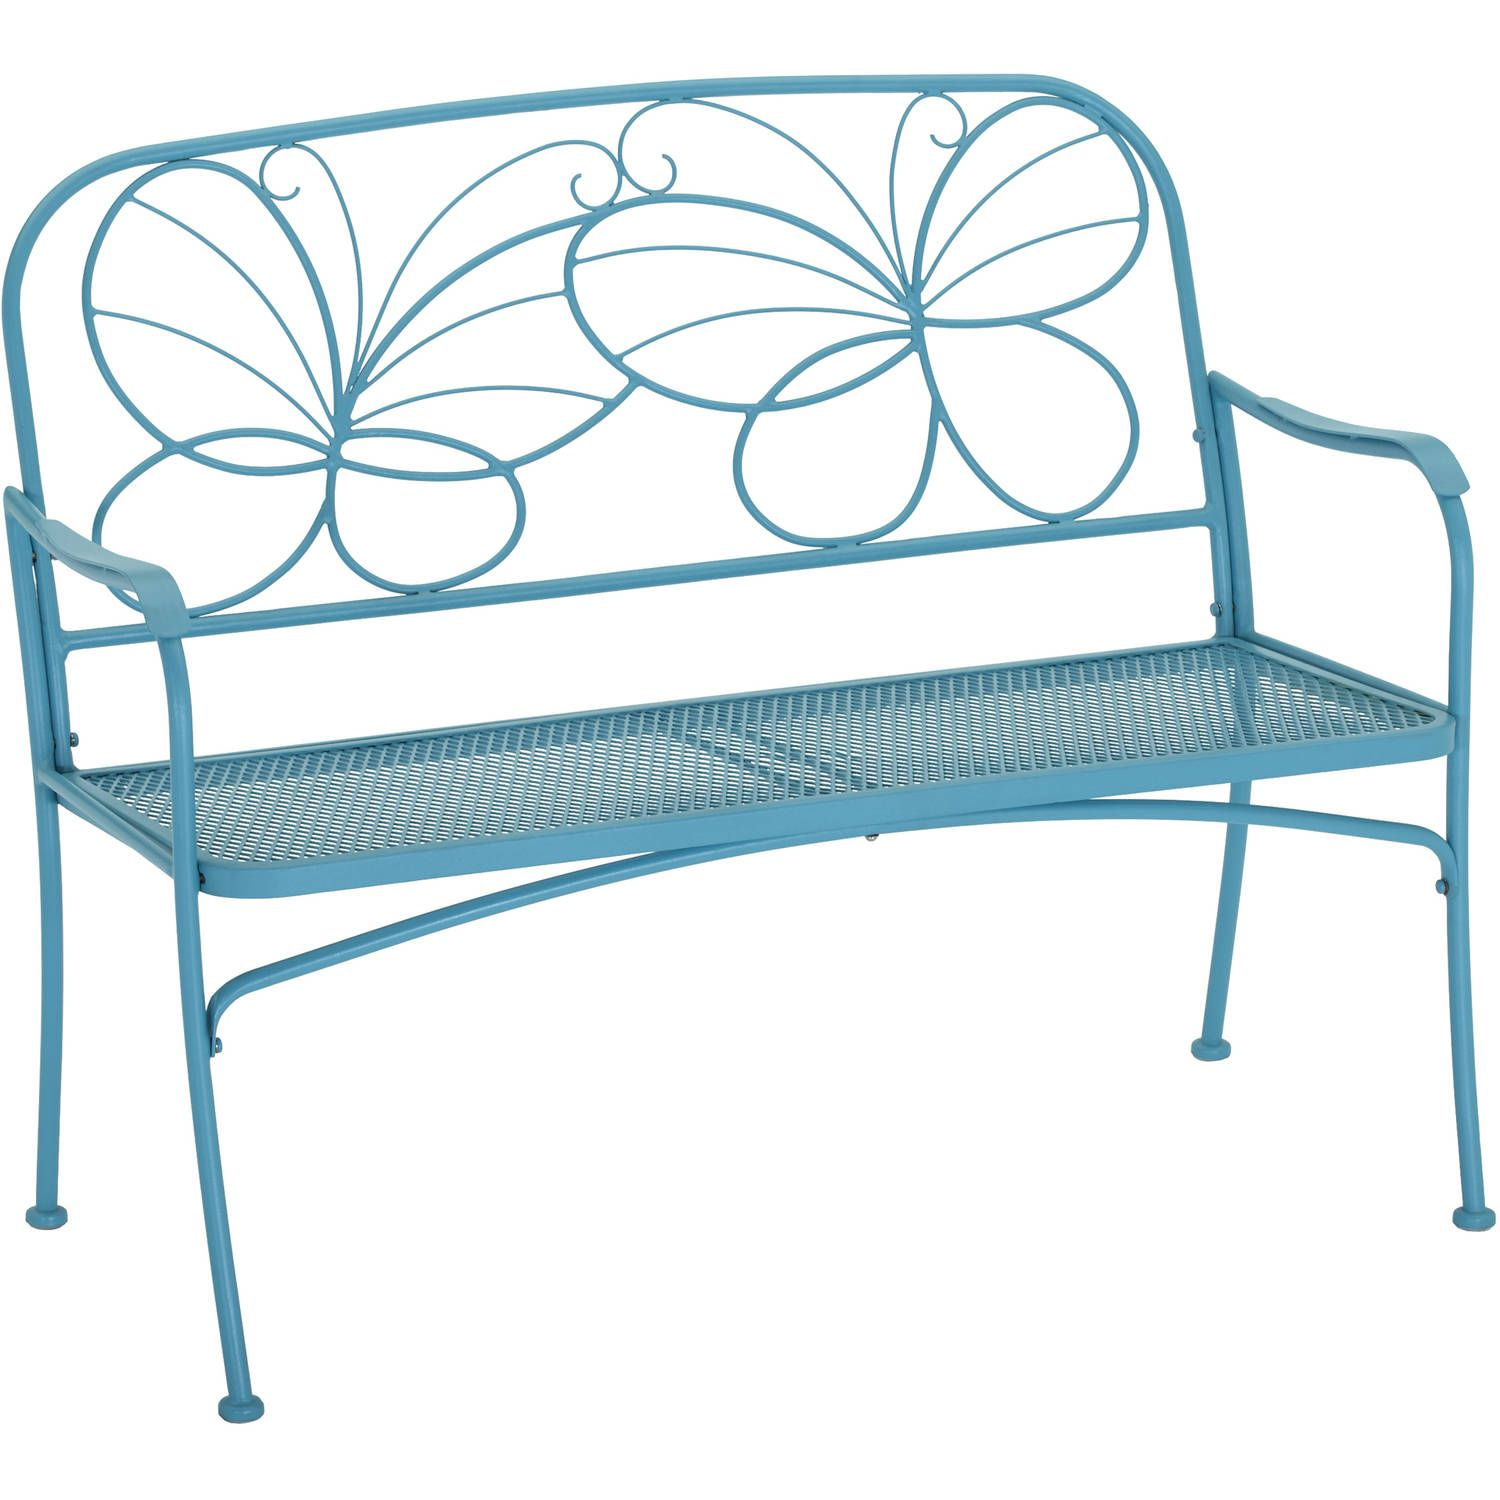 Astounding Free Shipping Buy Mainstays Butterfly Outdoor Patio Bench Caraccident5 Cool Chair Designs And Ideas Caraccident5Info